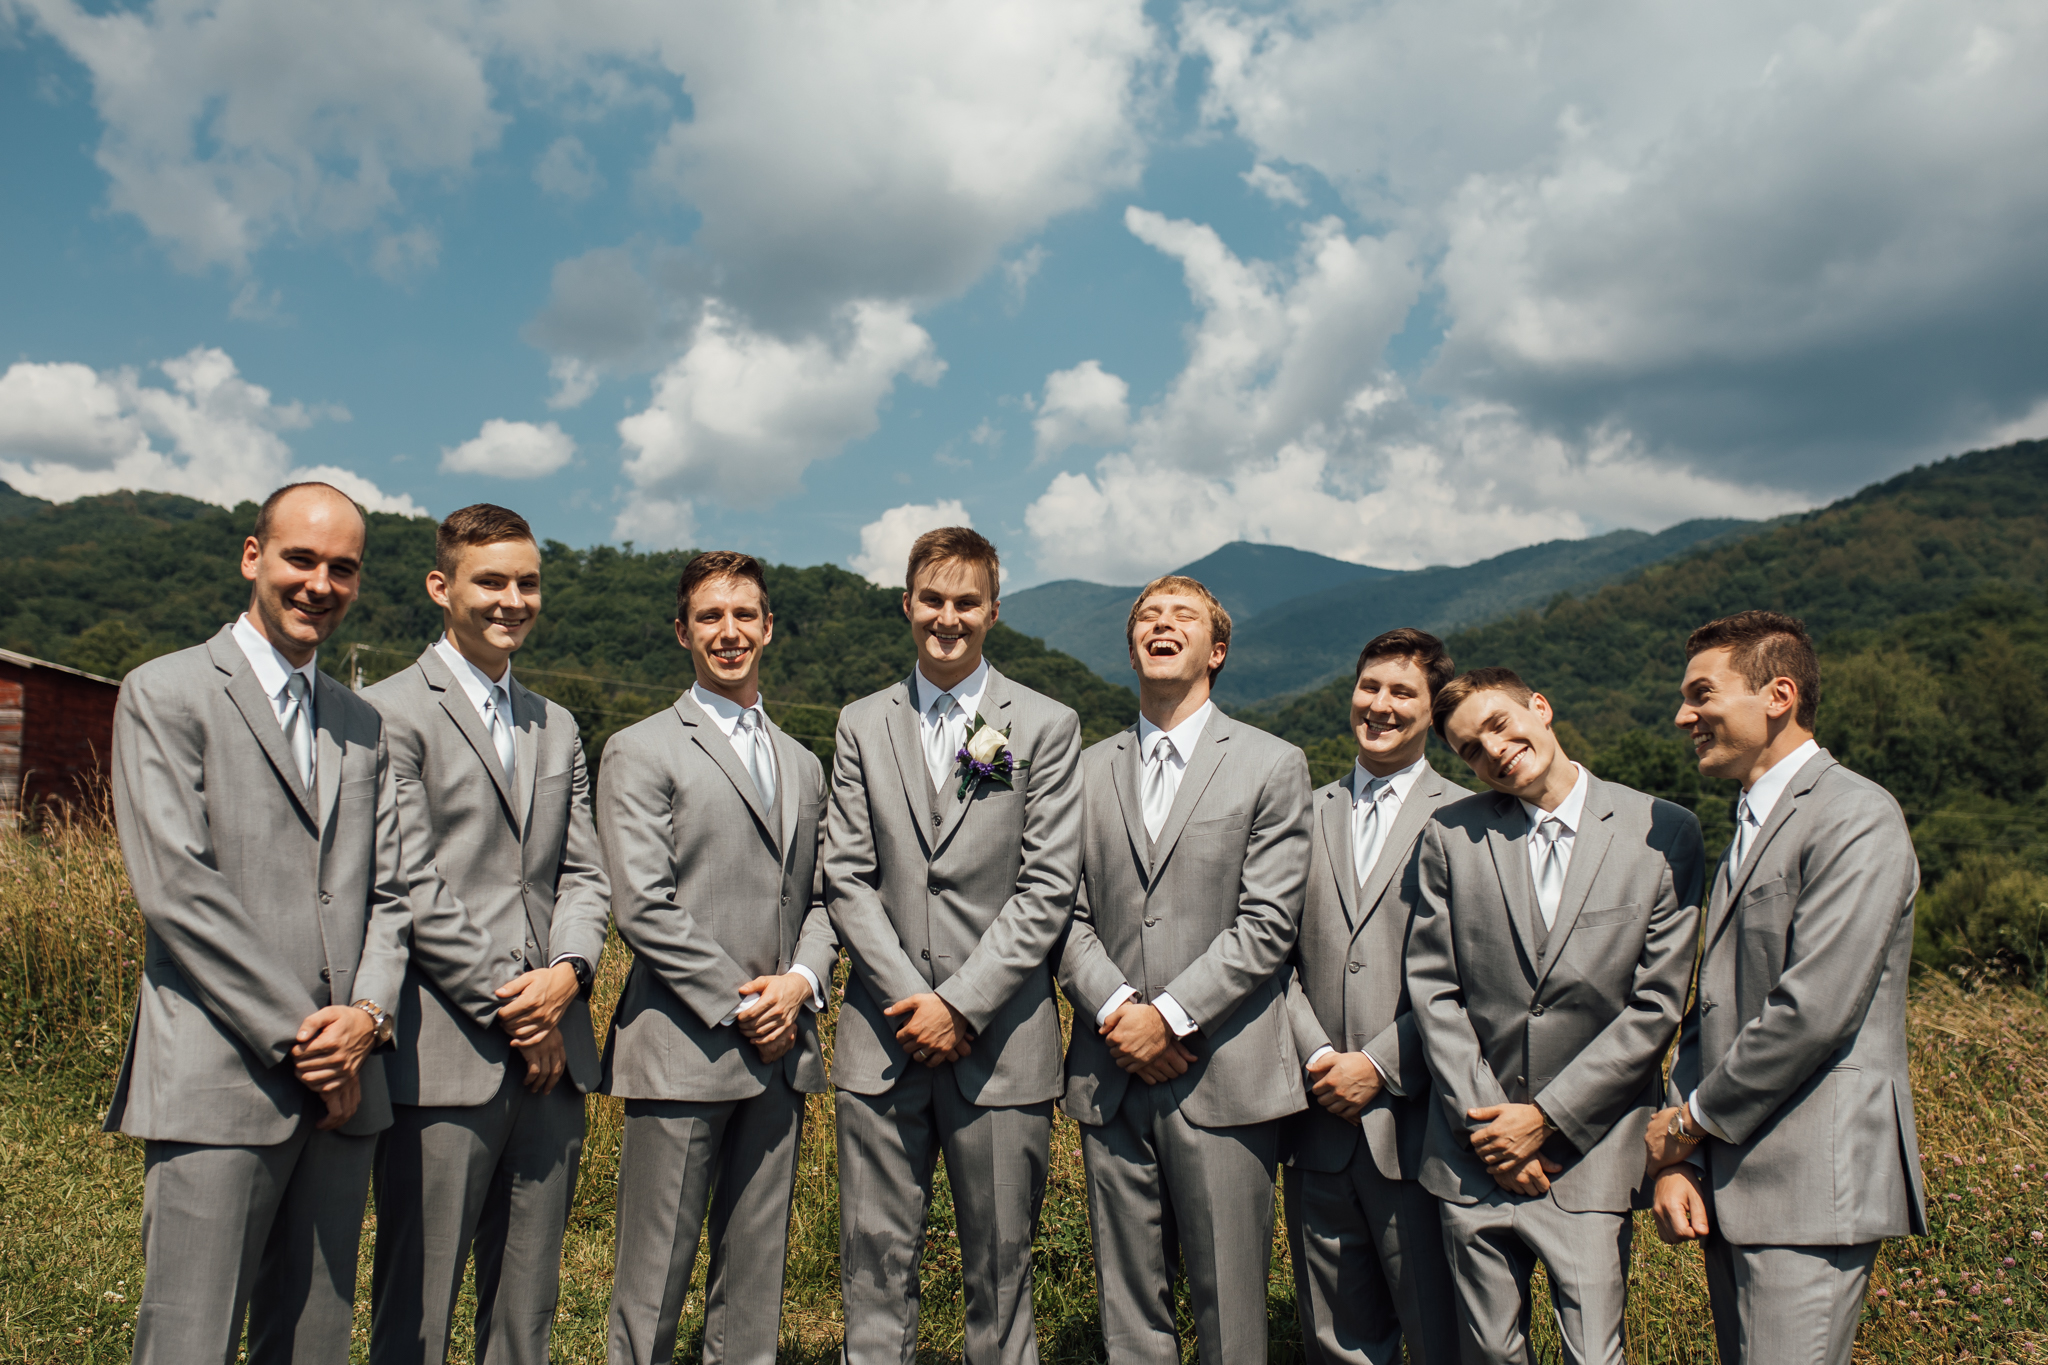 asheville-wedding-photographers-TheBasilicaofSt.Lawrence-IvyCreekFamilyFarm-thewarmtharoundyou (19 of 52).jpg